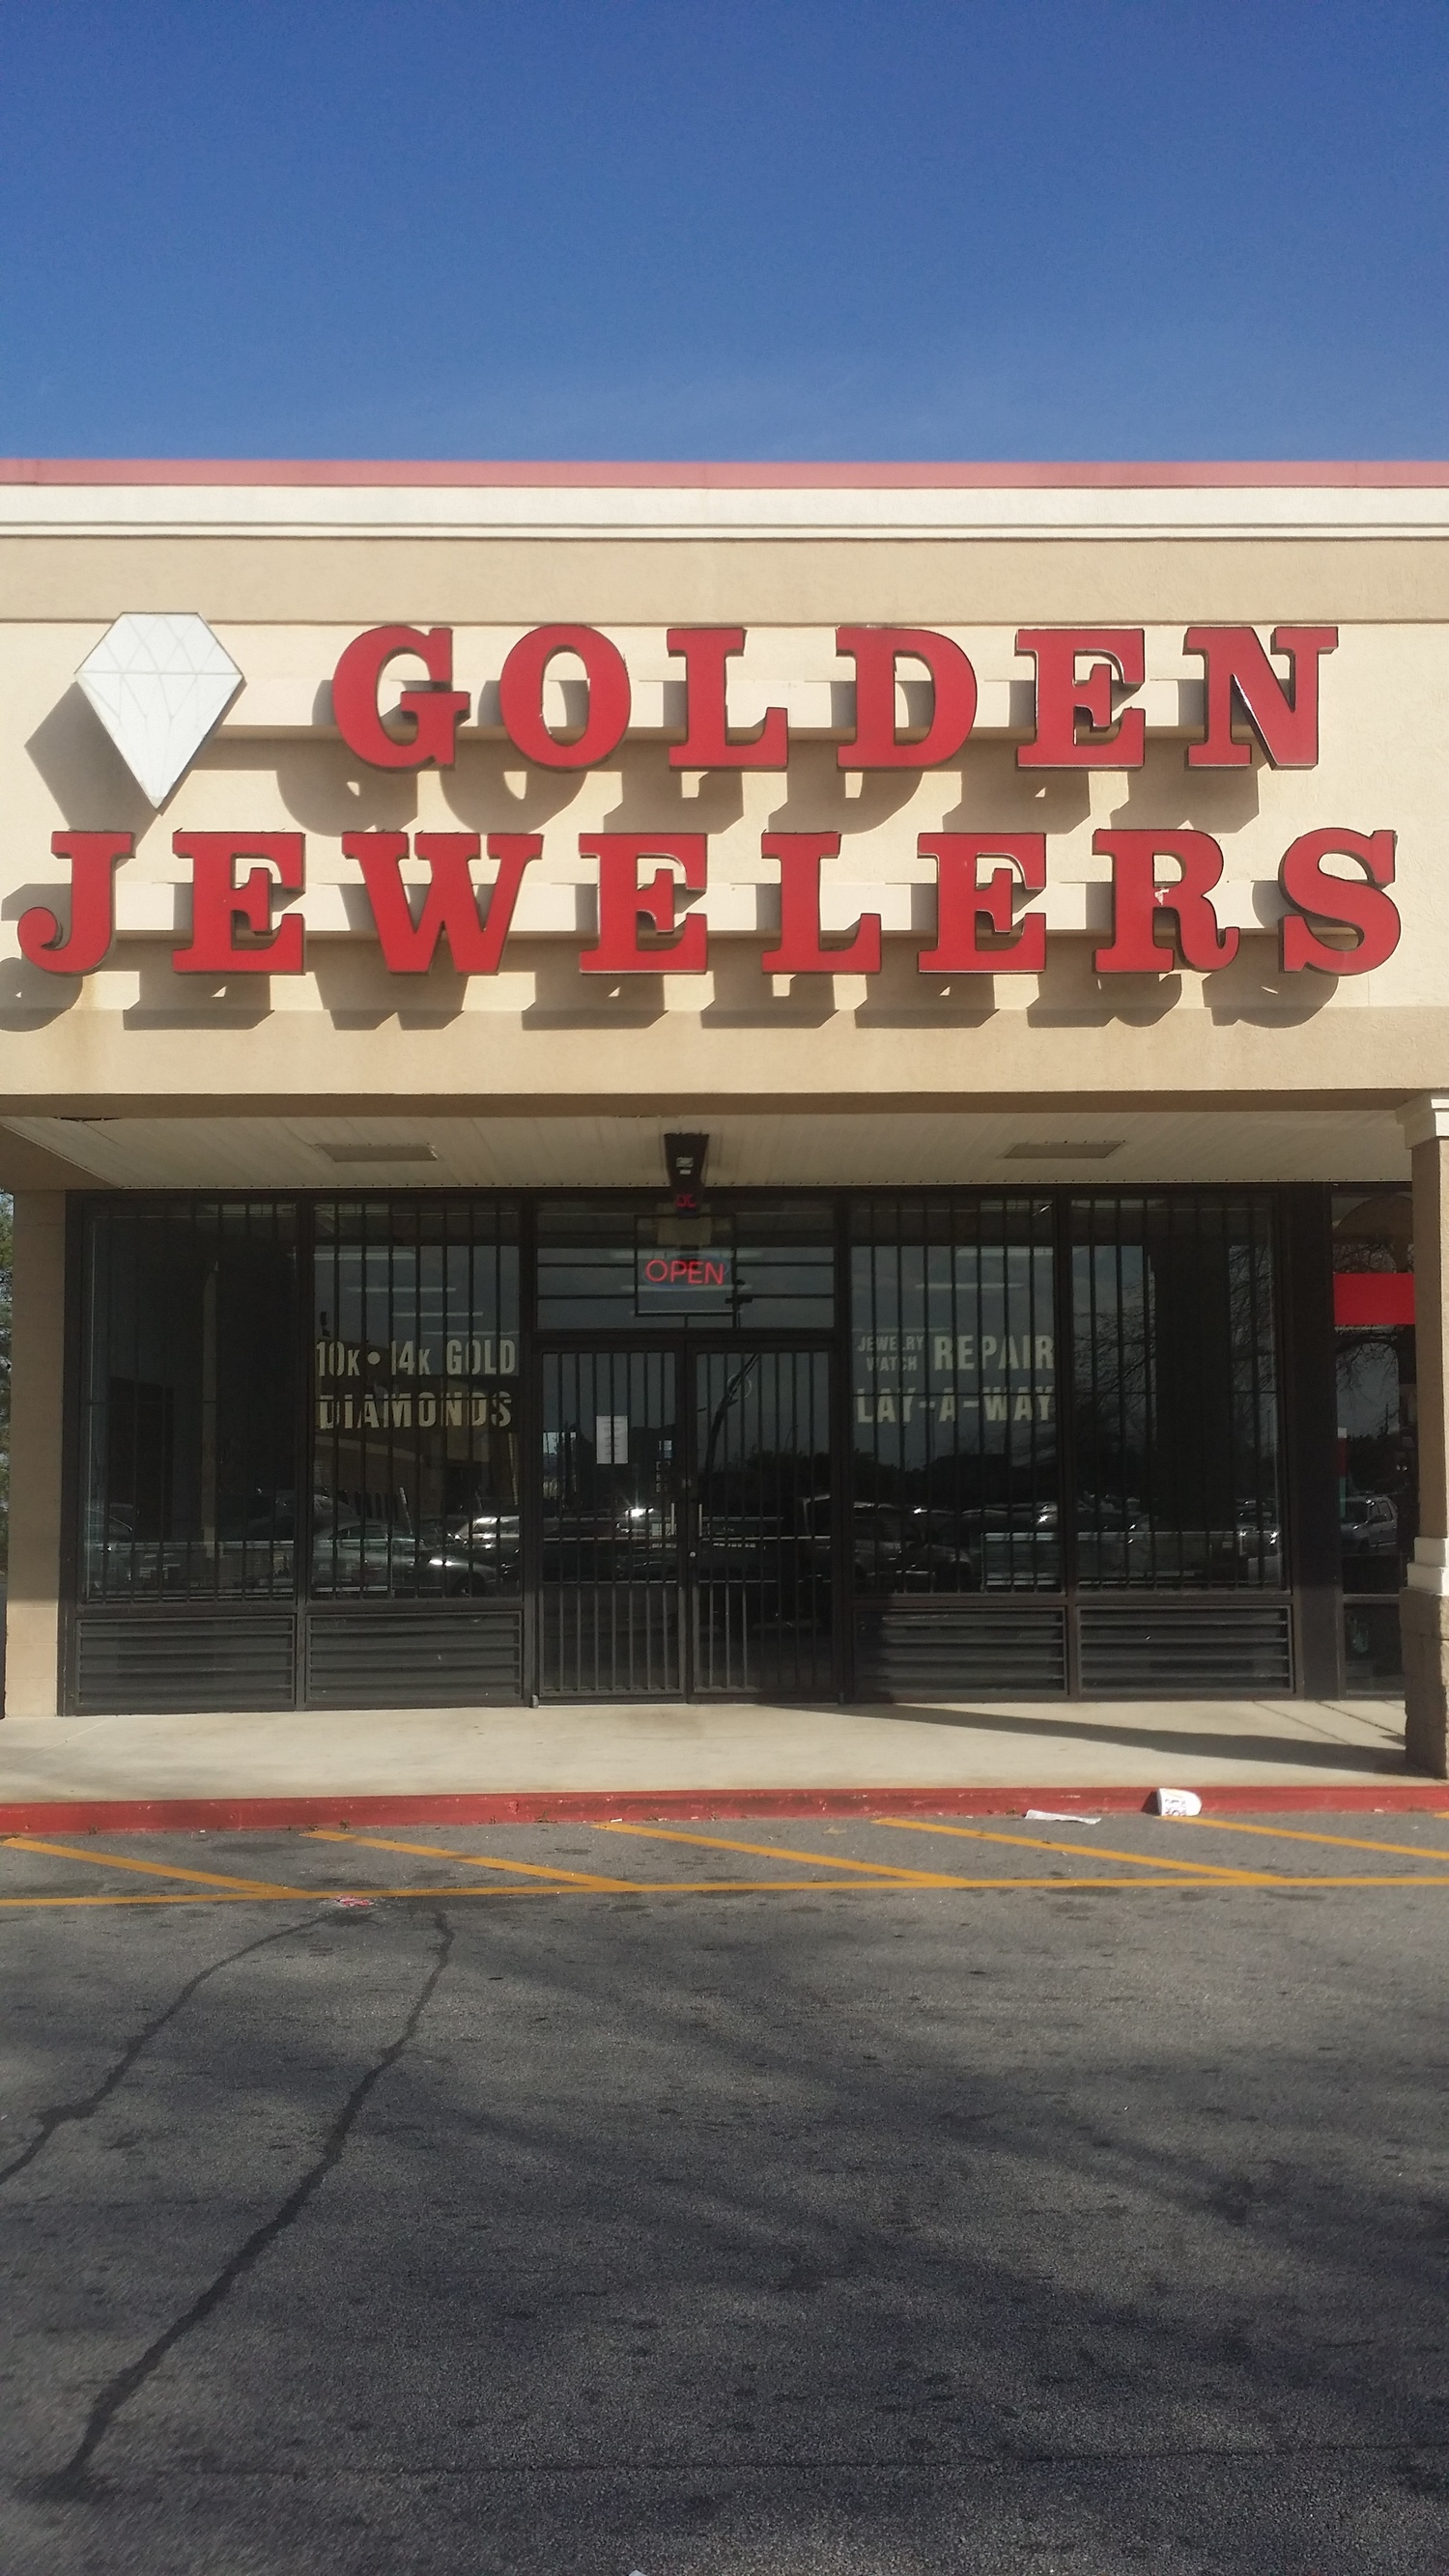 GoldenJewelersGrills